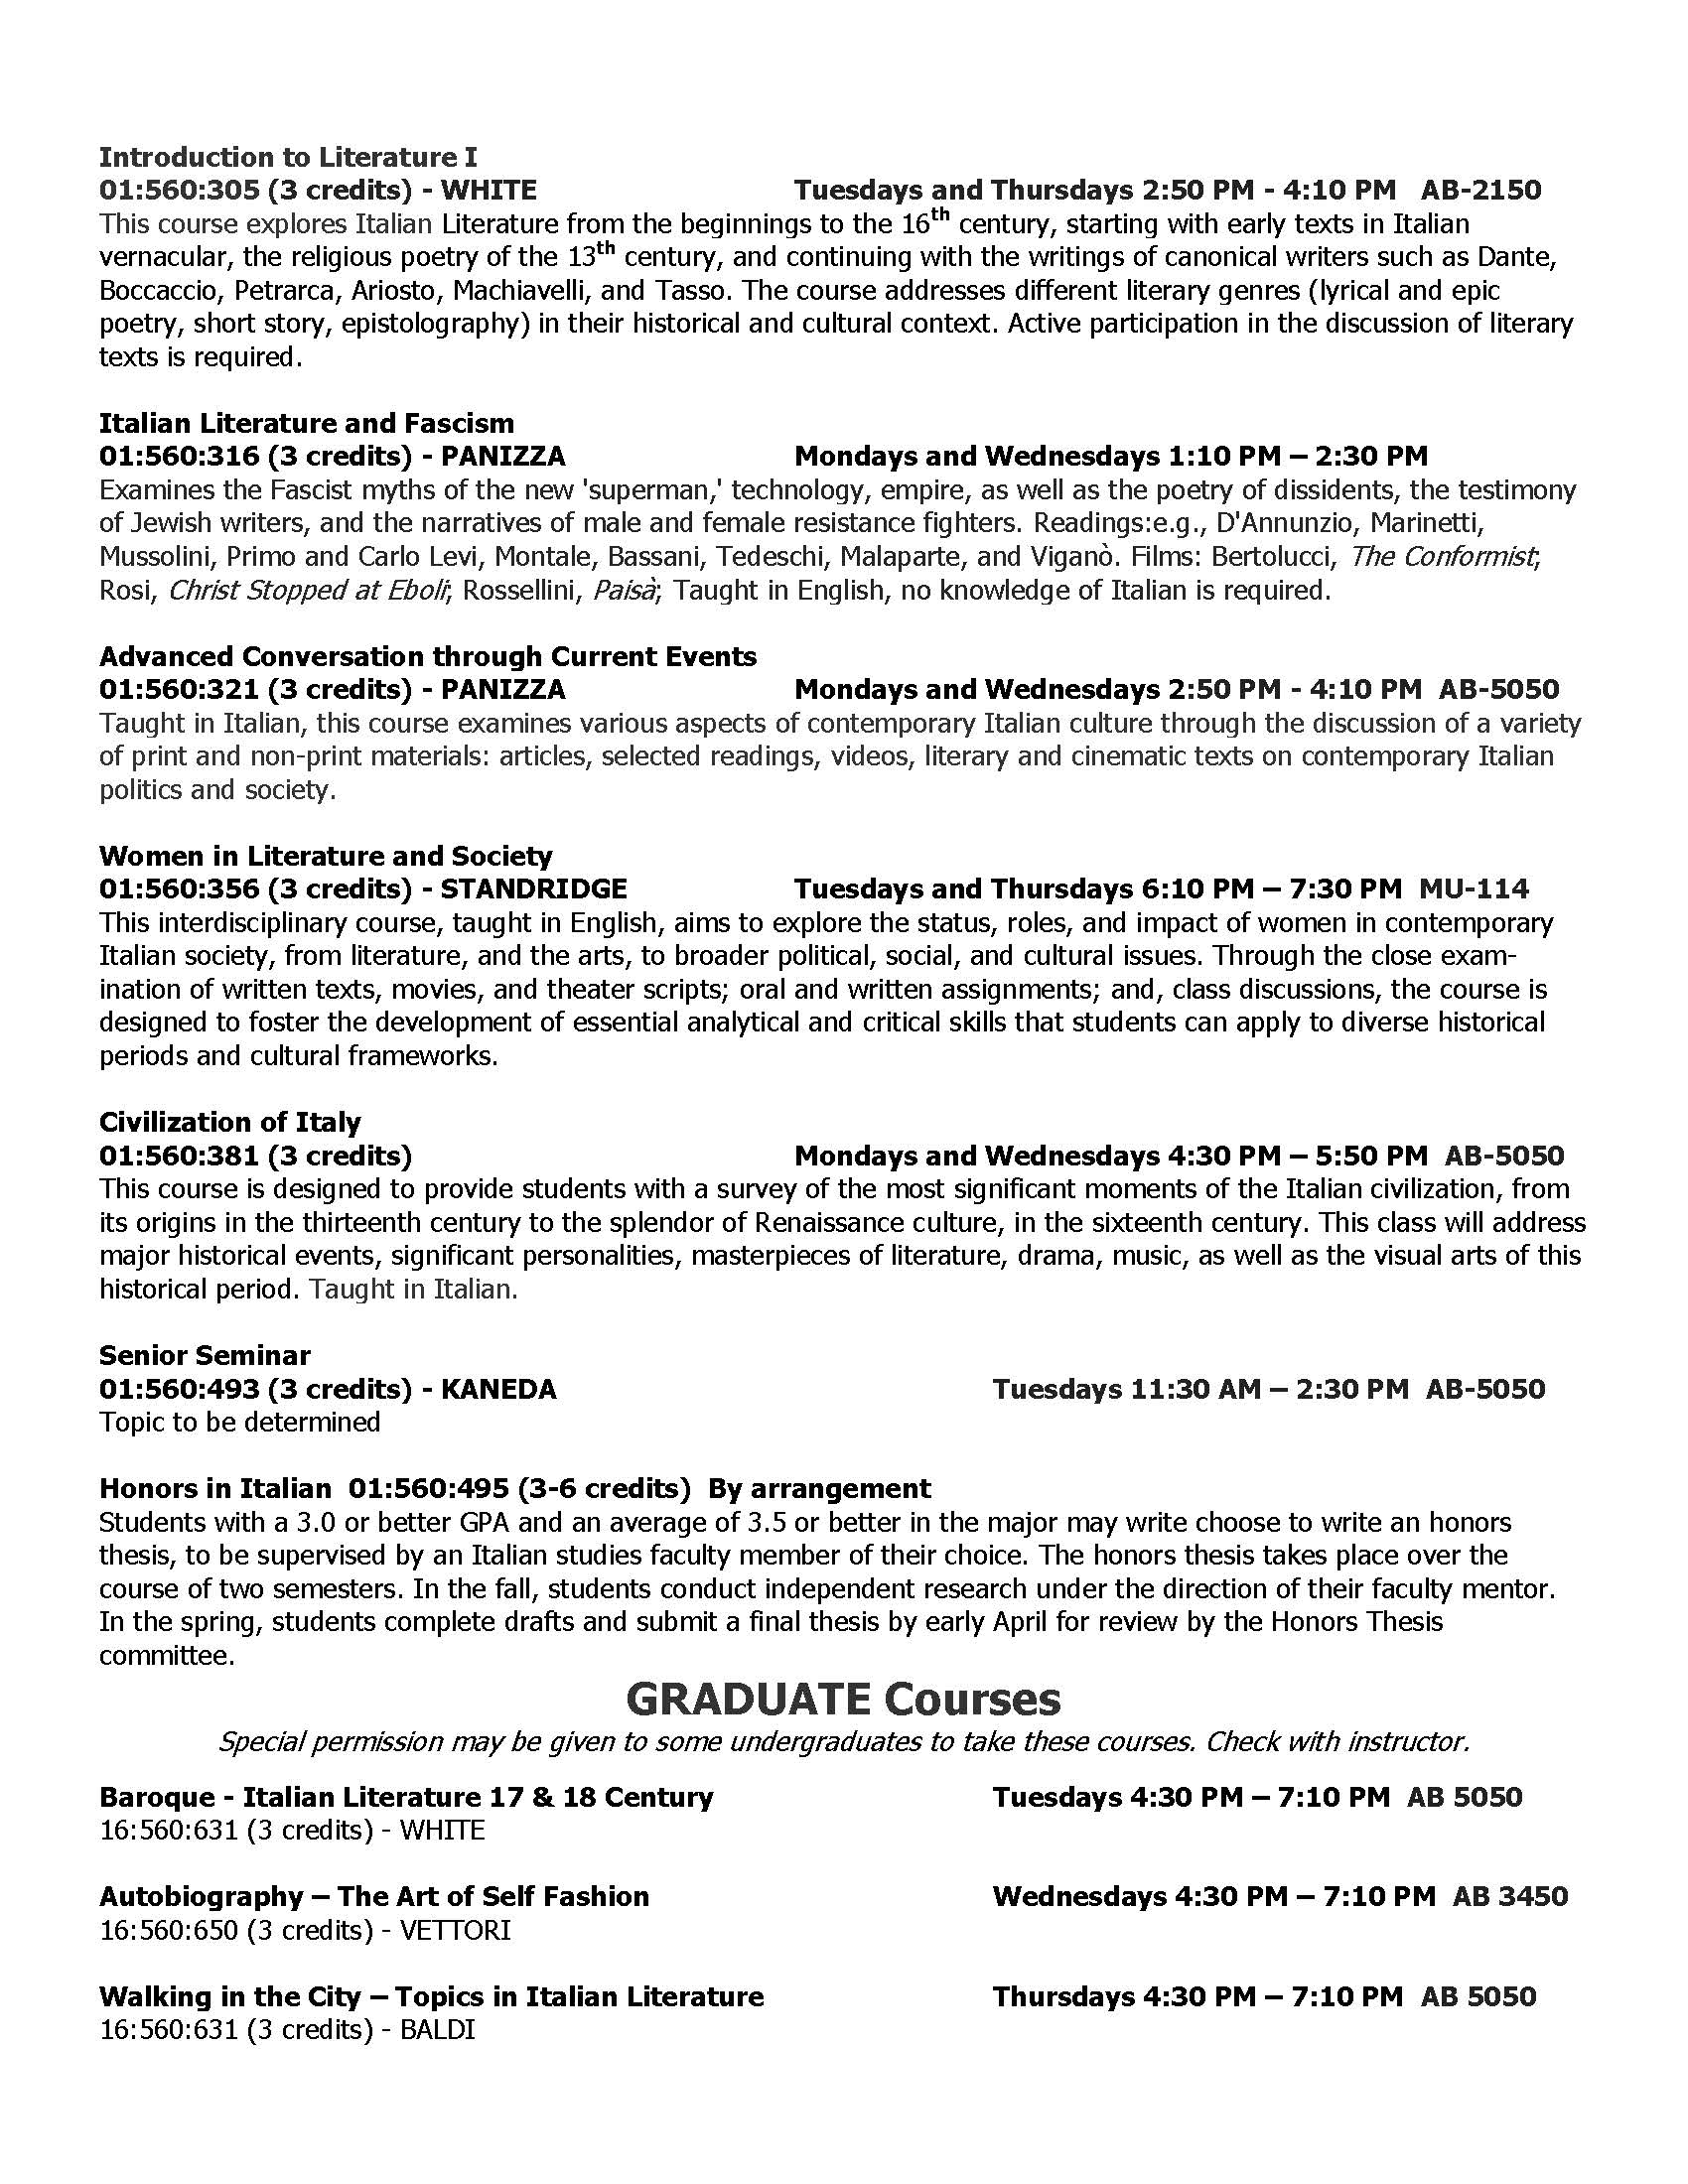 Fall 2016 Course Offerings Page 2